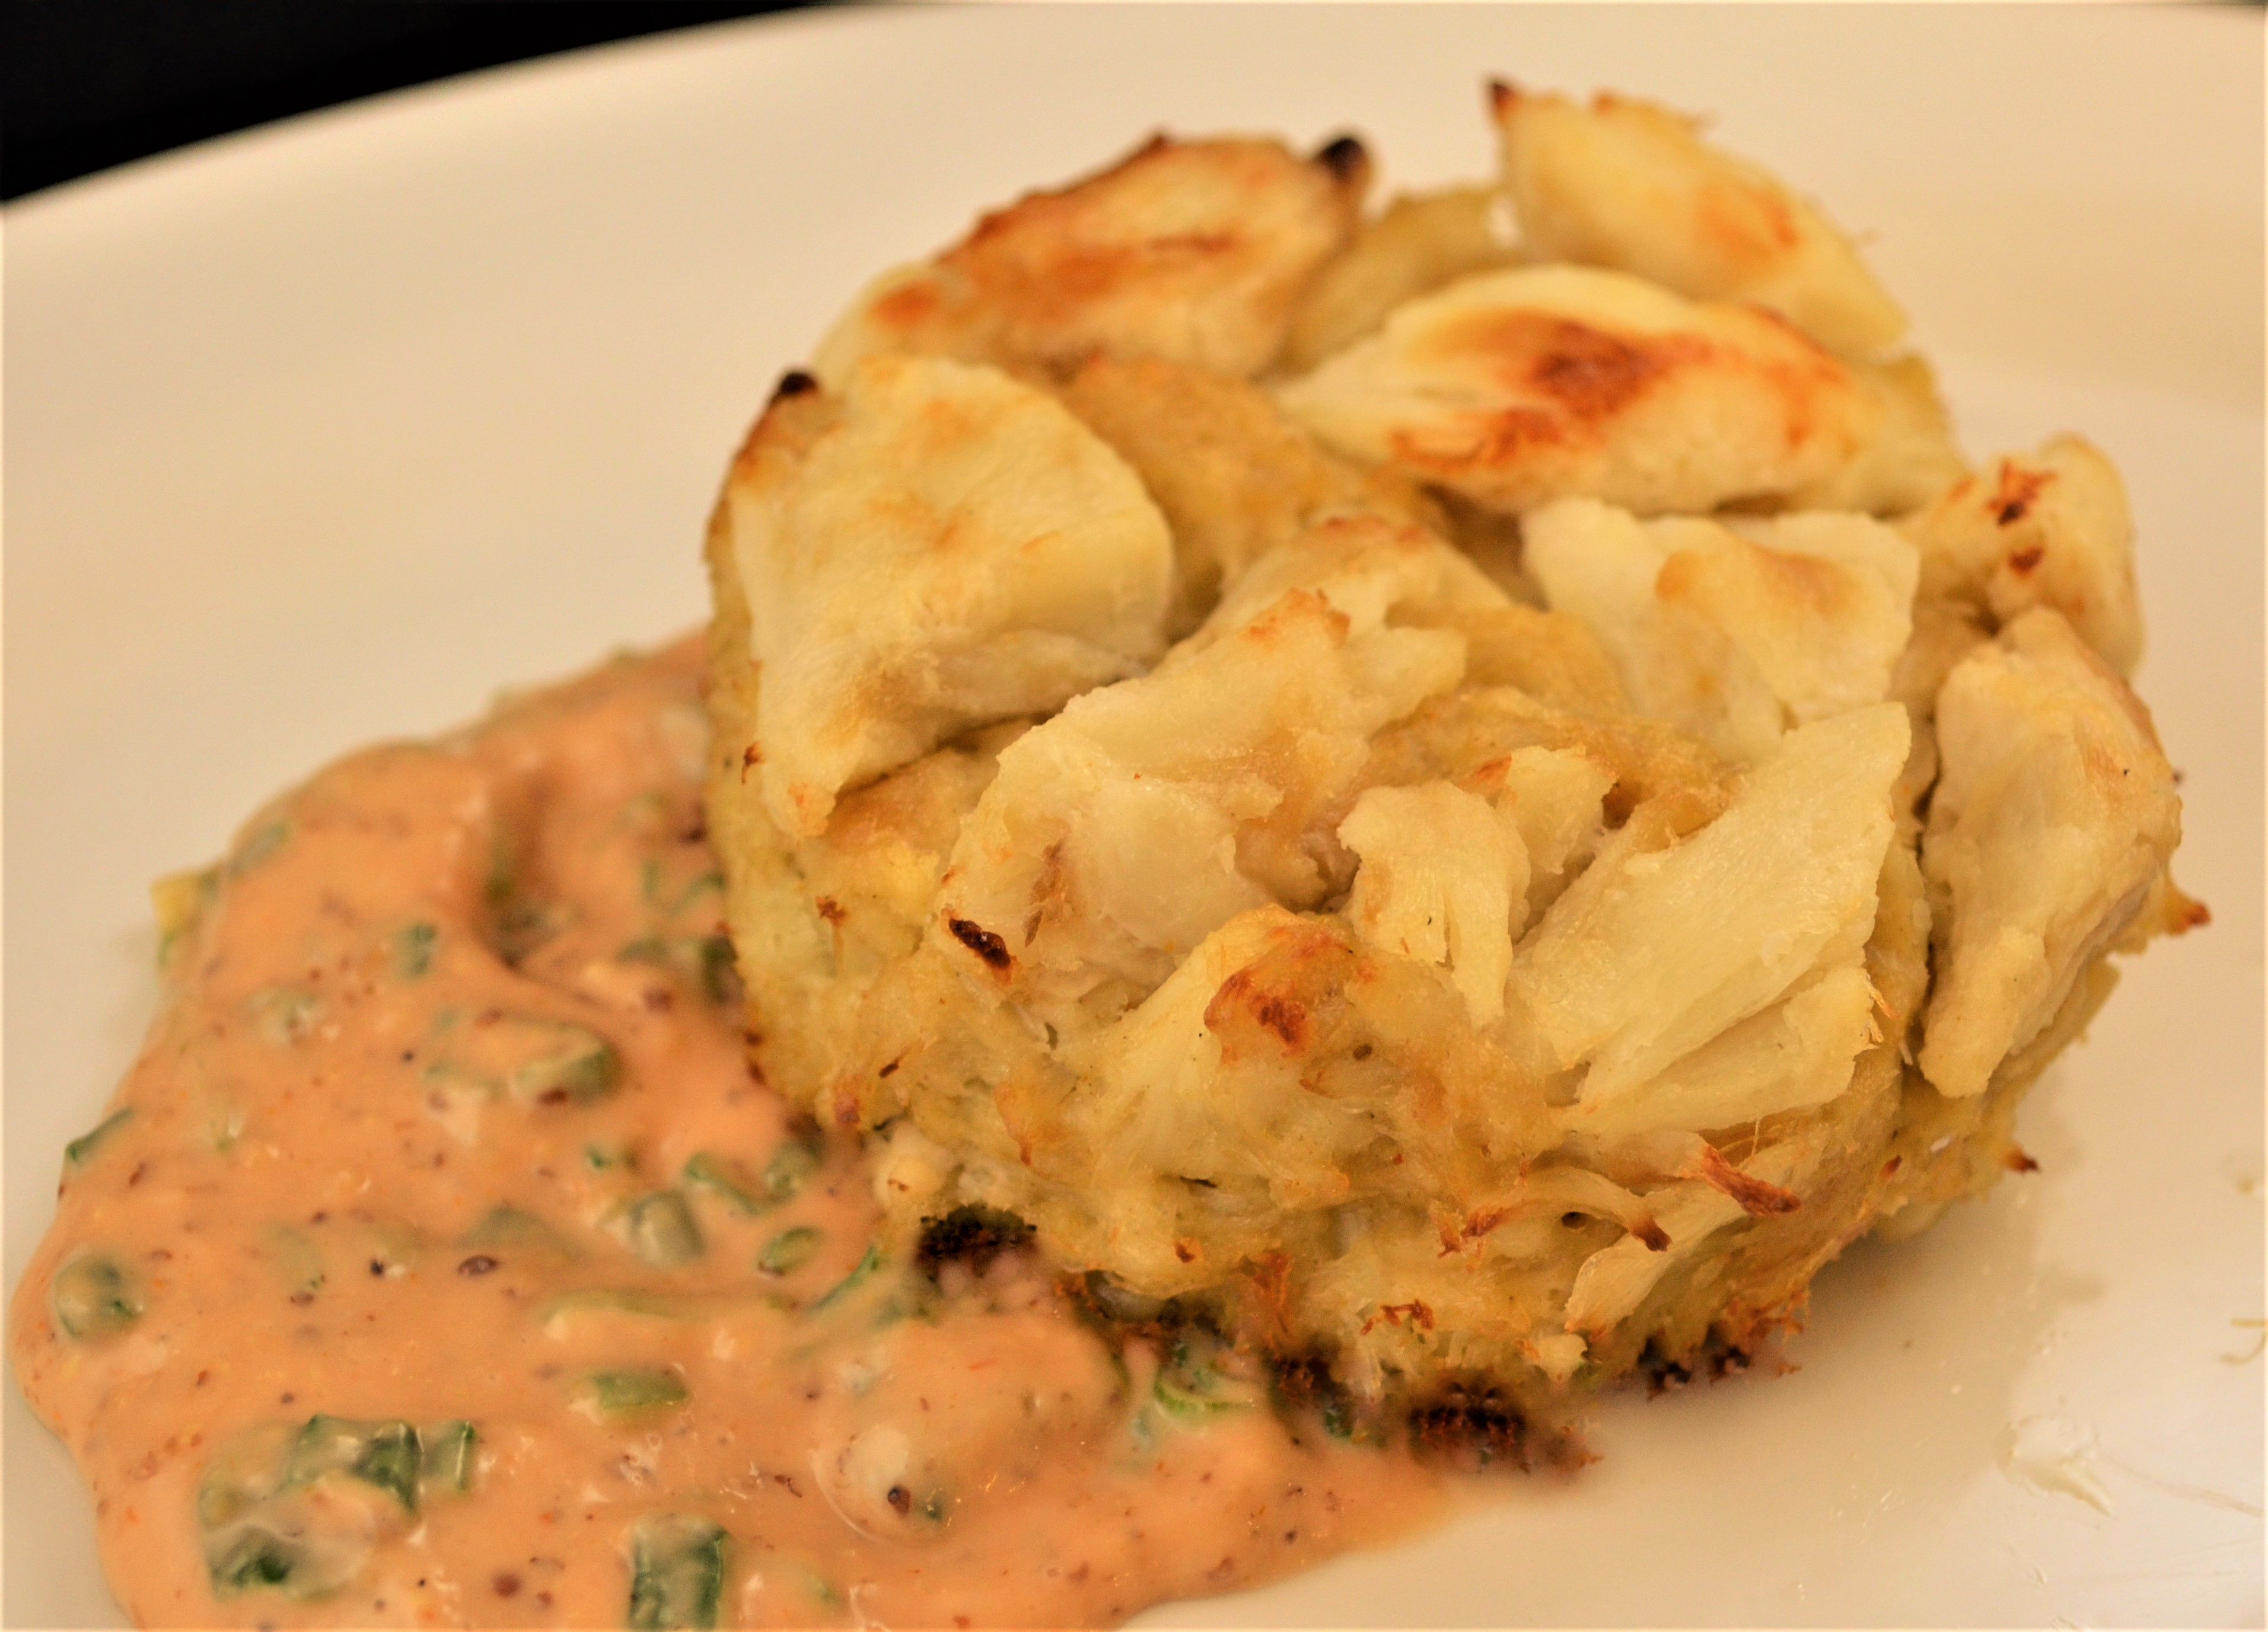 Crab Cake Recipe With Ritz Crackers